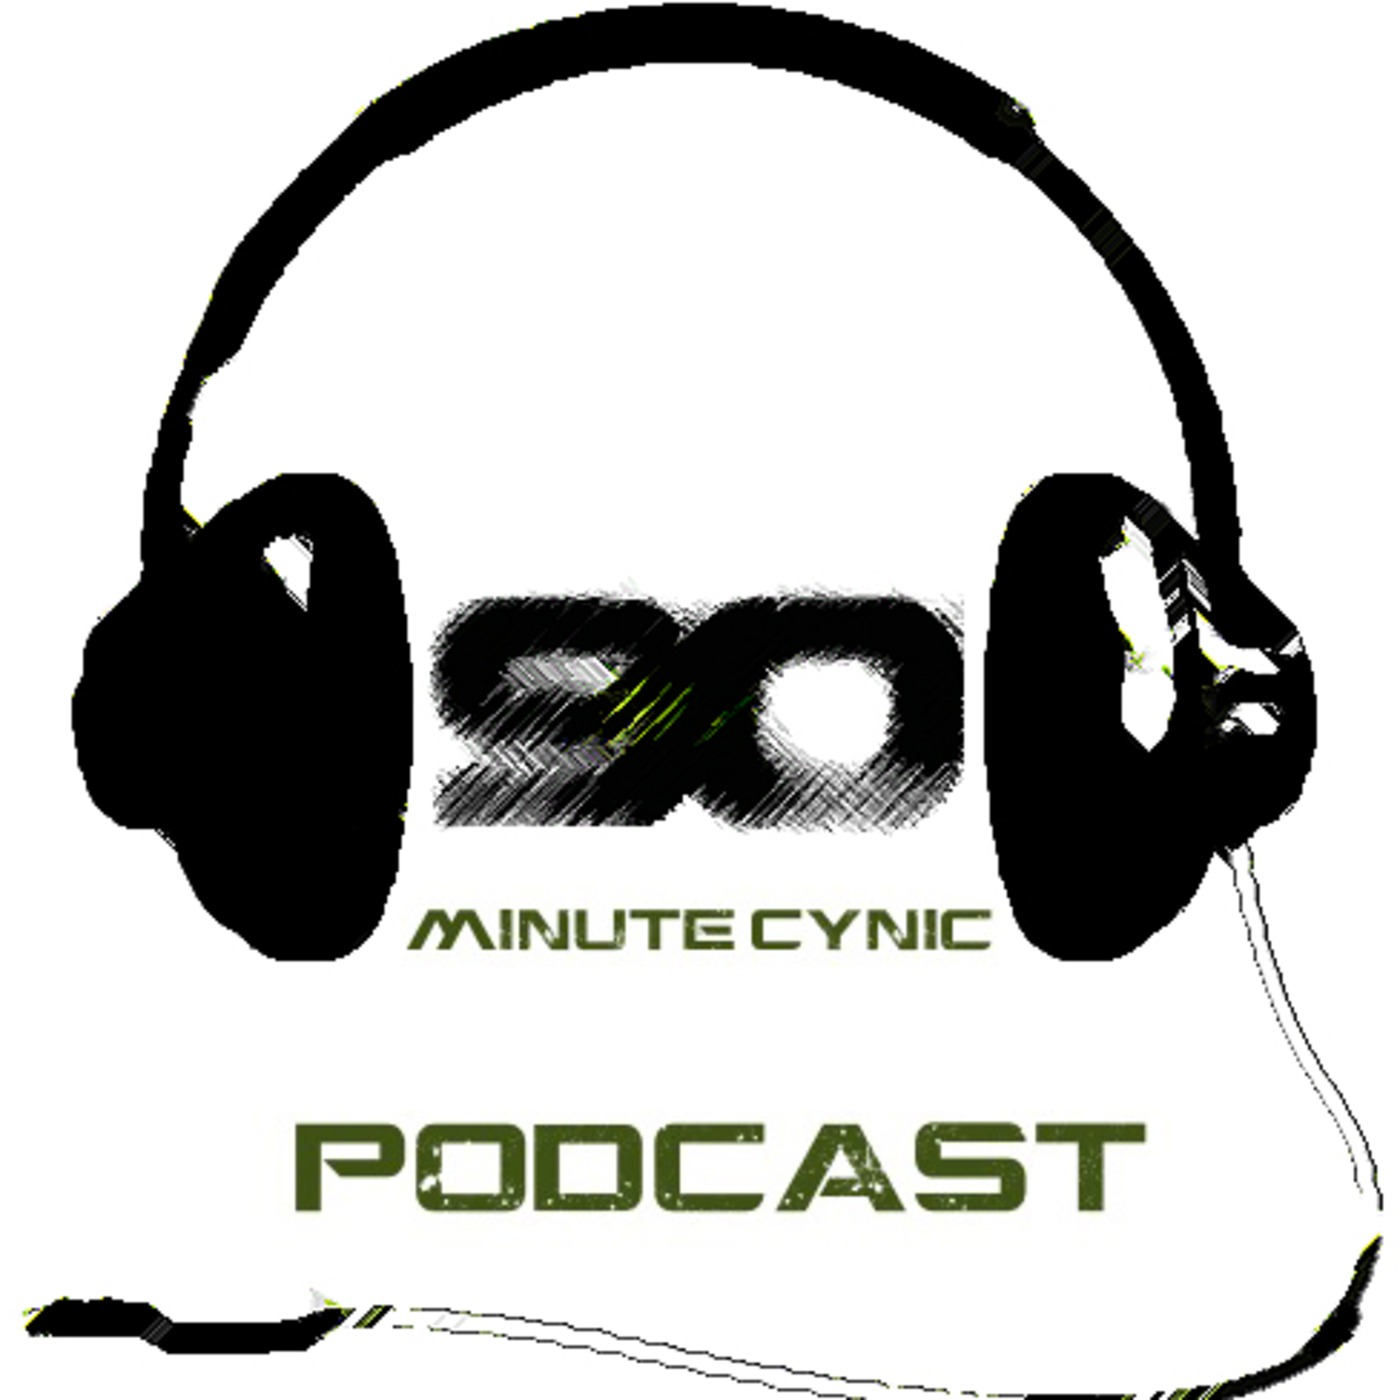 90MinuteCynic's Podcast